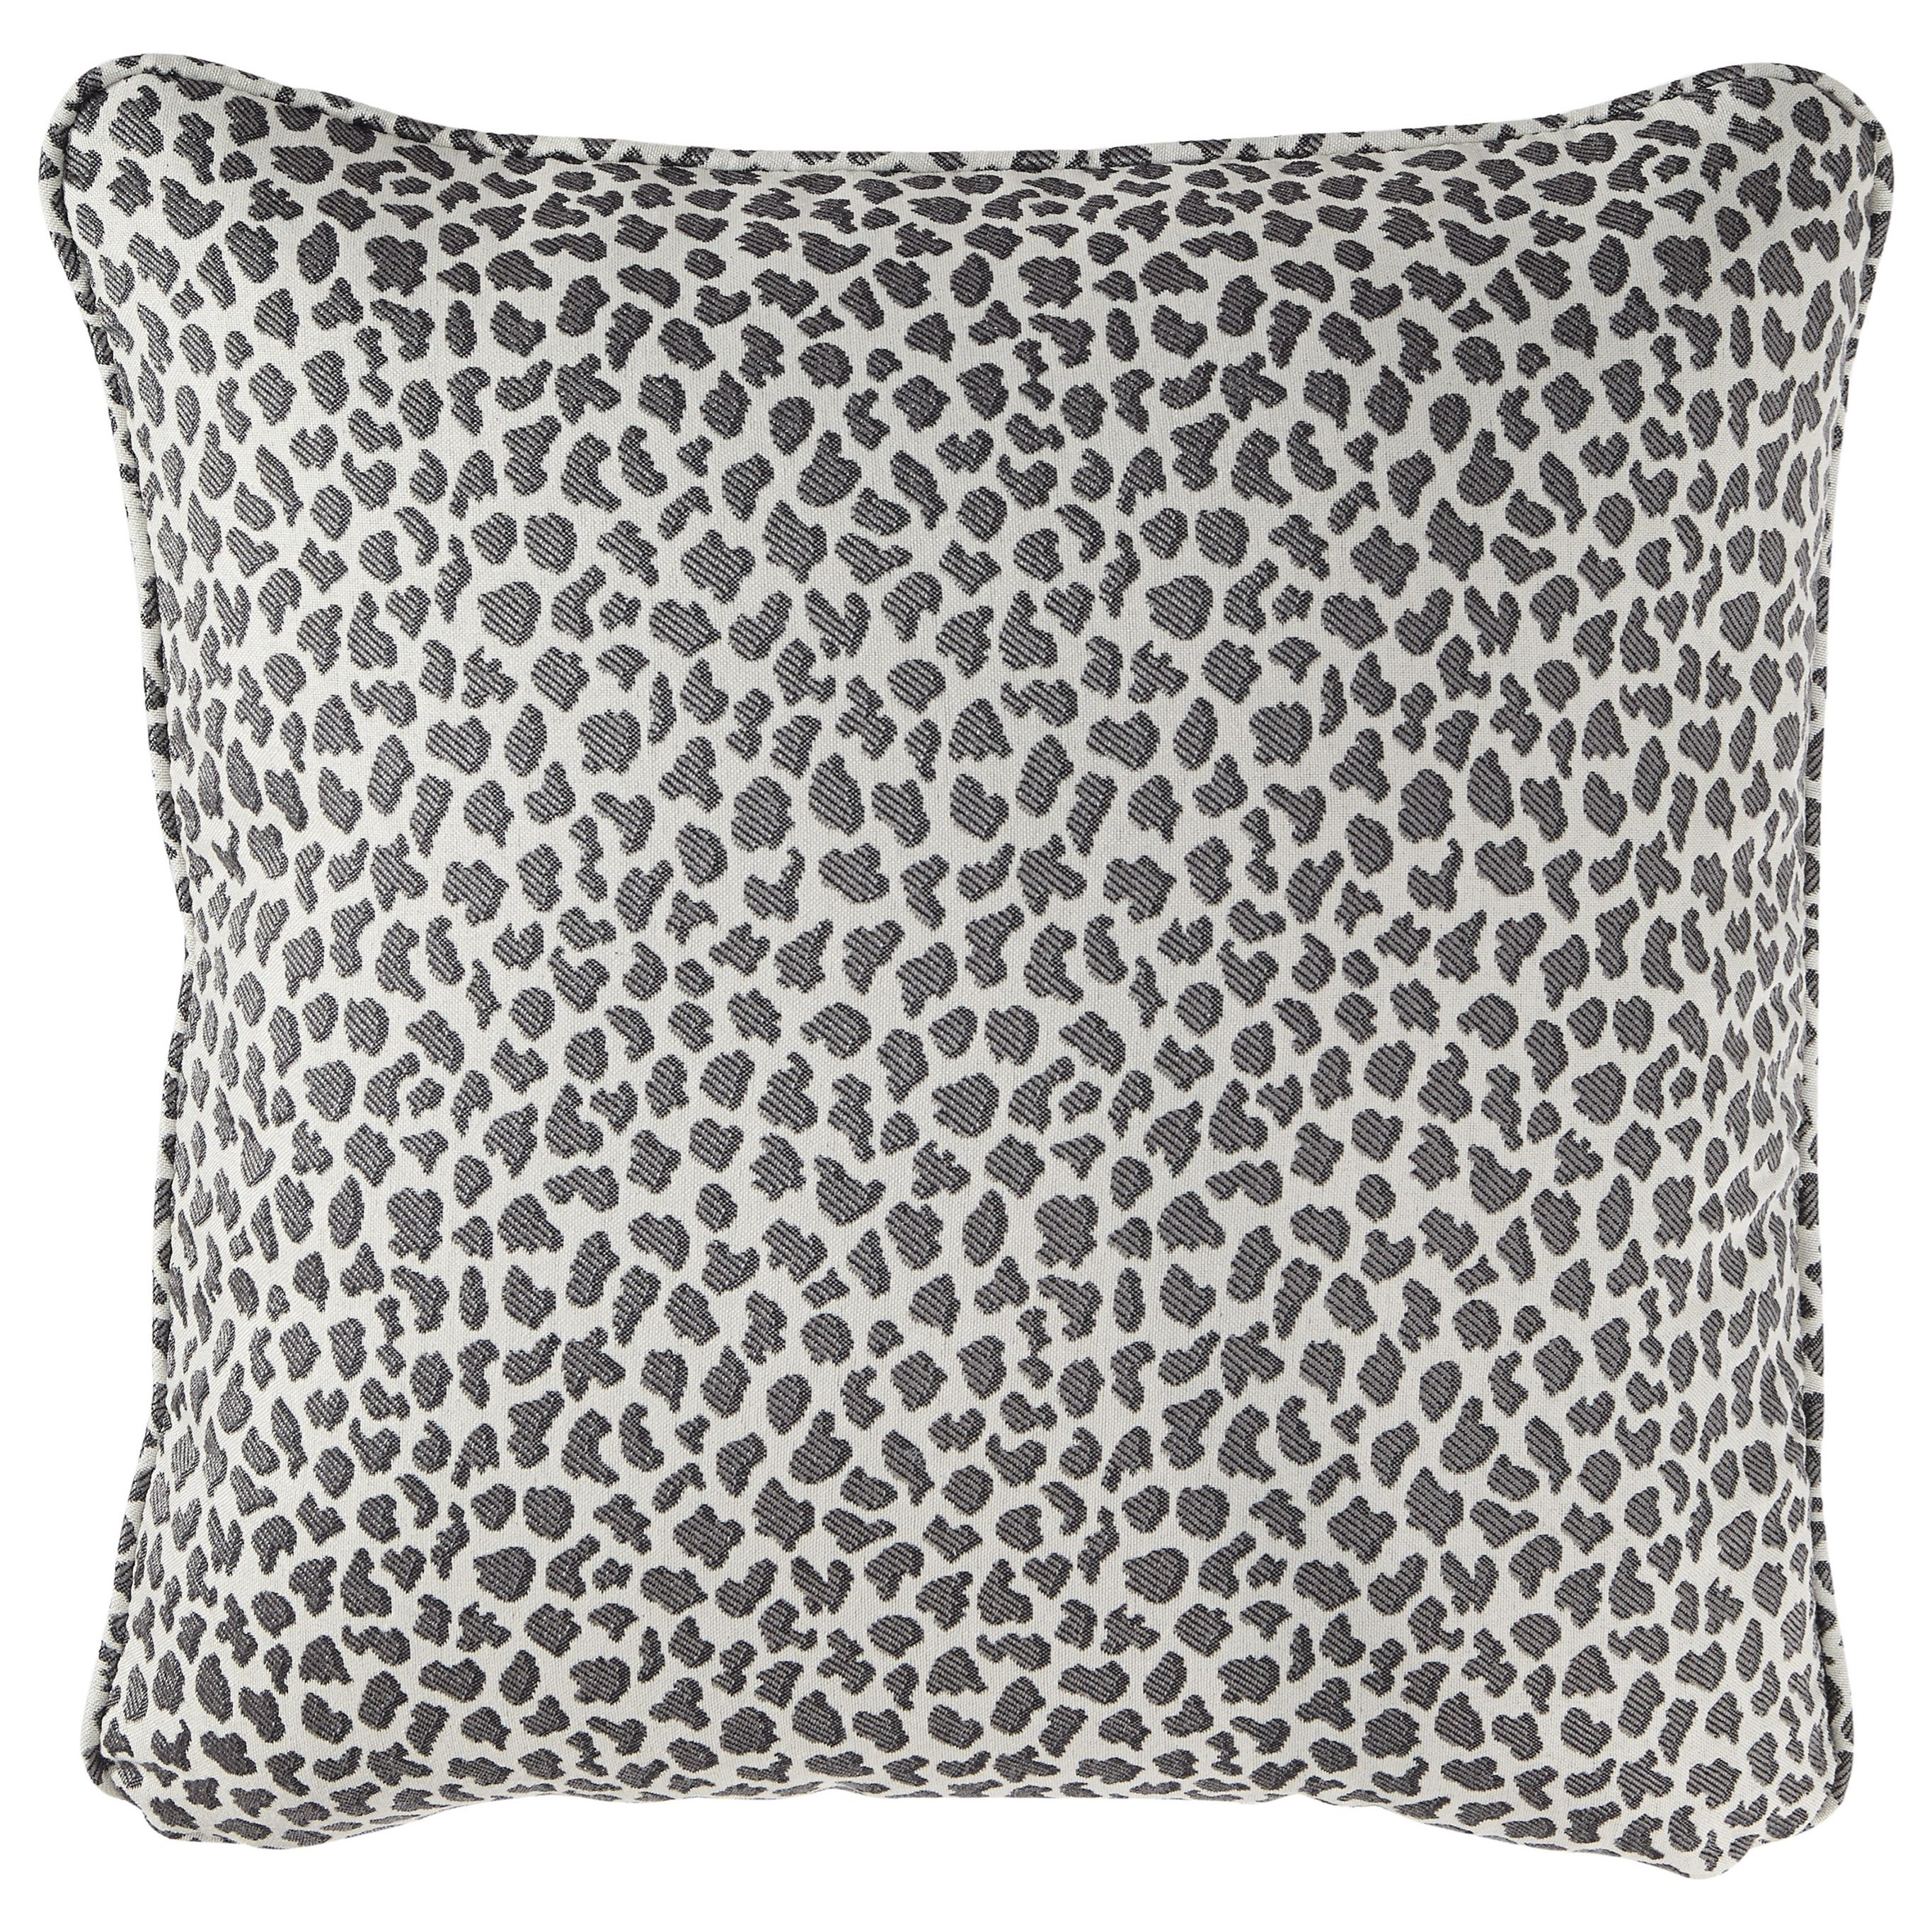 Signature Design by Ashley Pillows Piercy Gray Pillow - Item Number: A1000832P